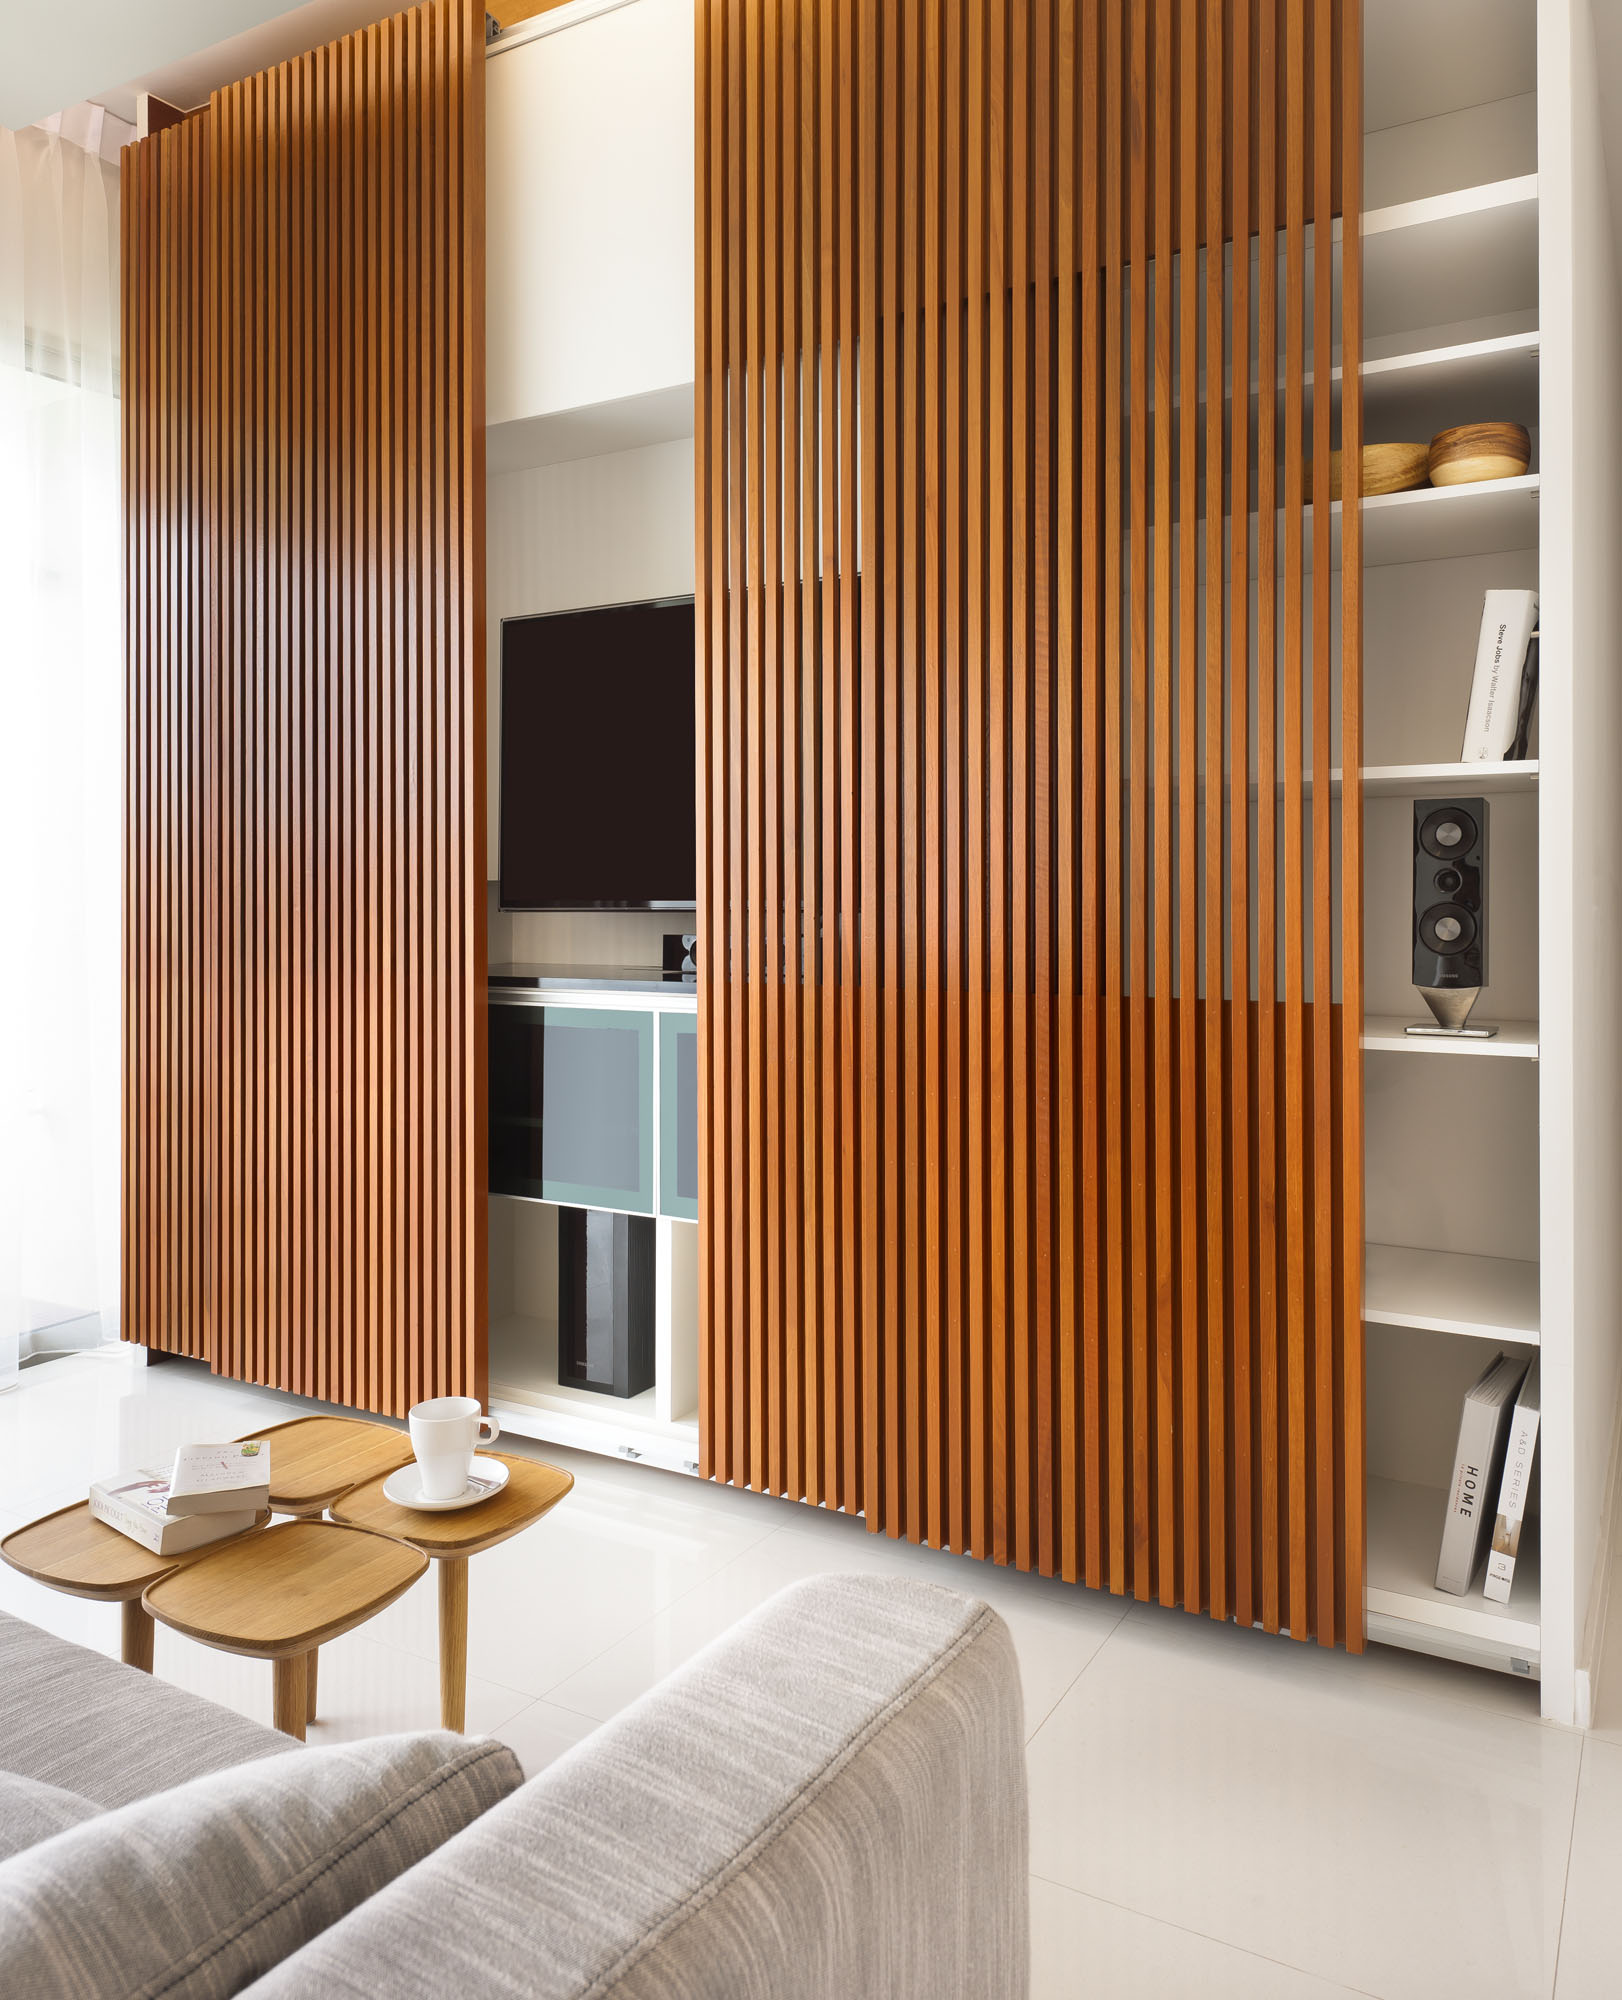 wood slat wall covering